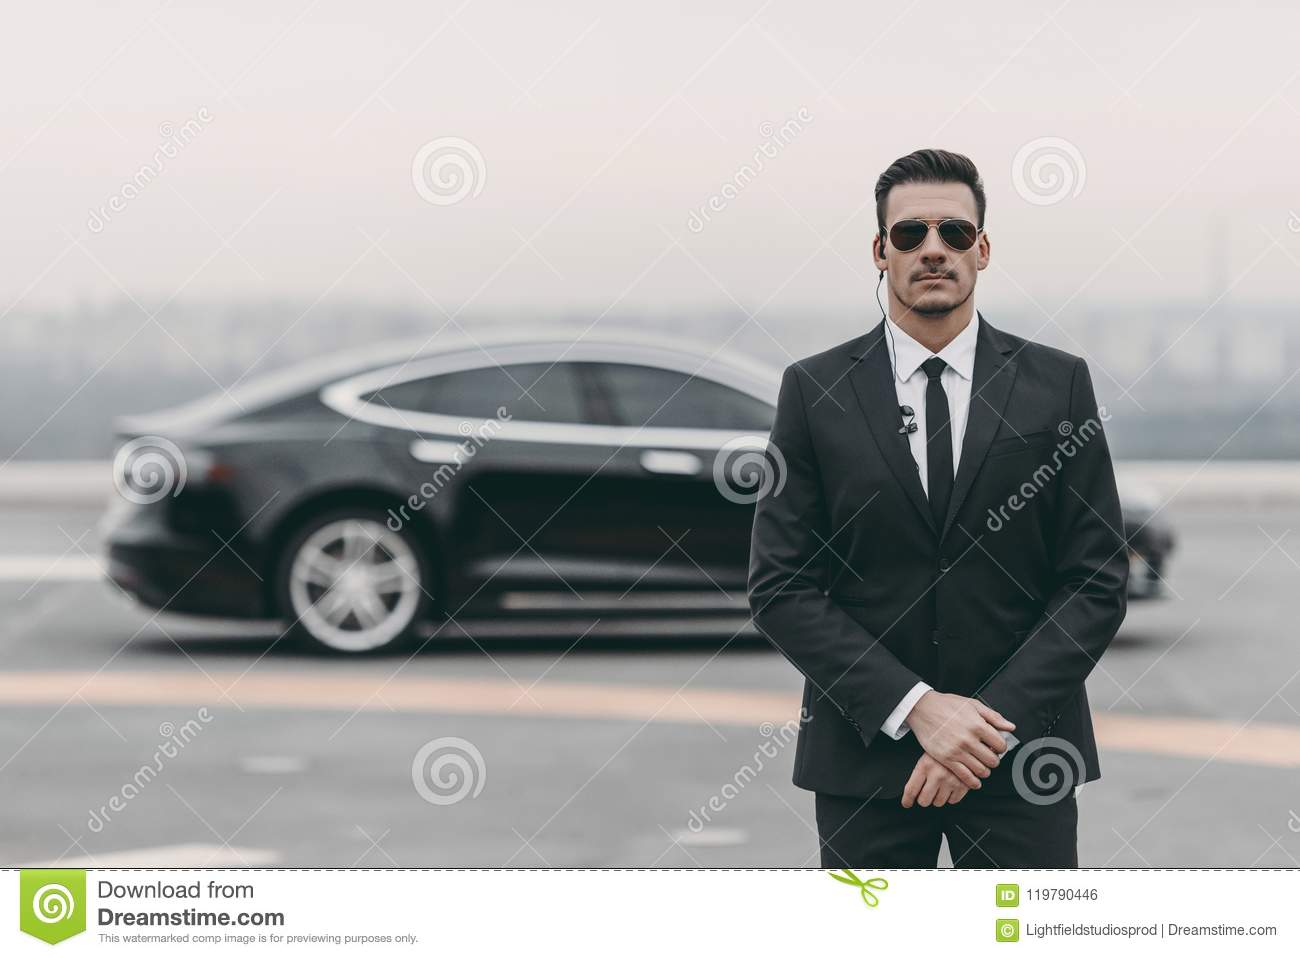 serious bodyguard standing with sunglasses and security earpiece